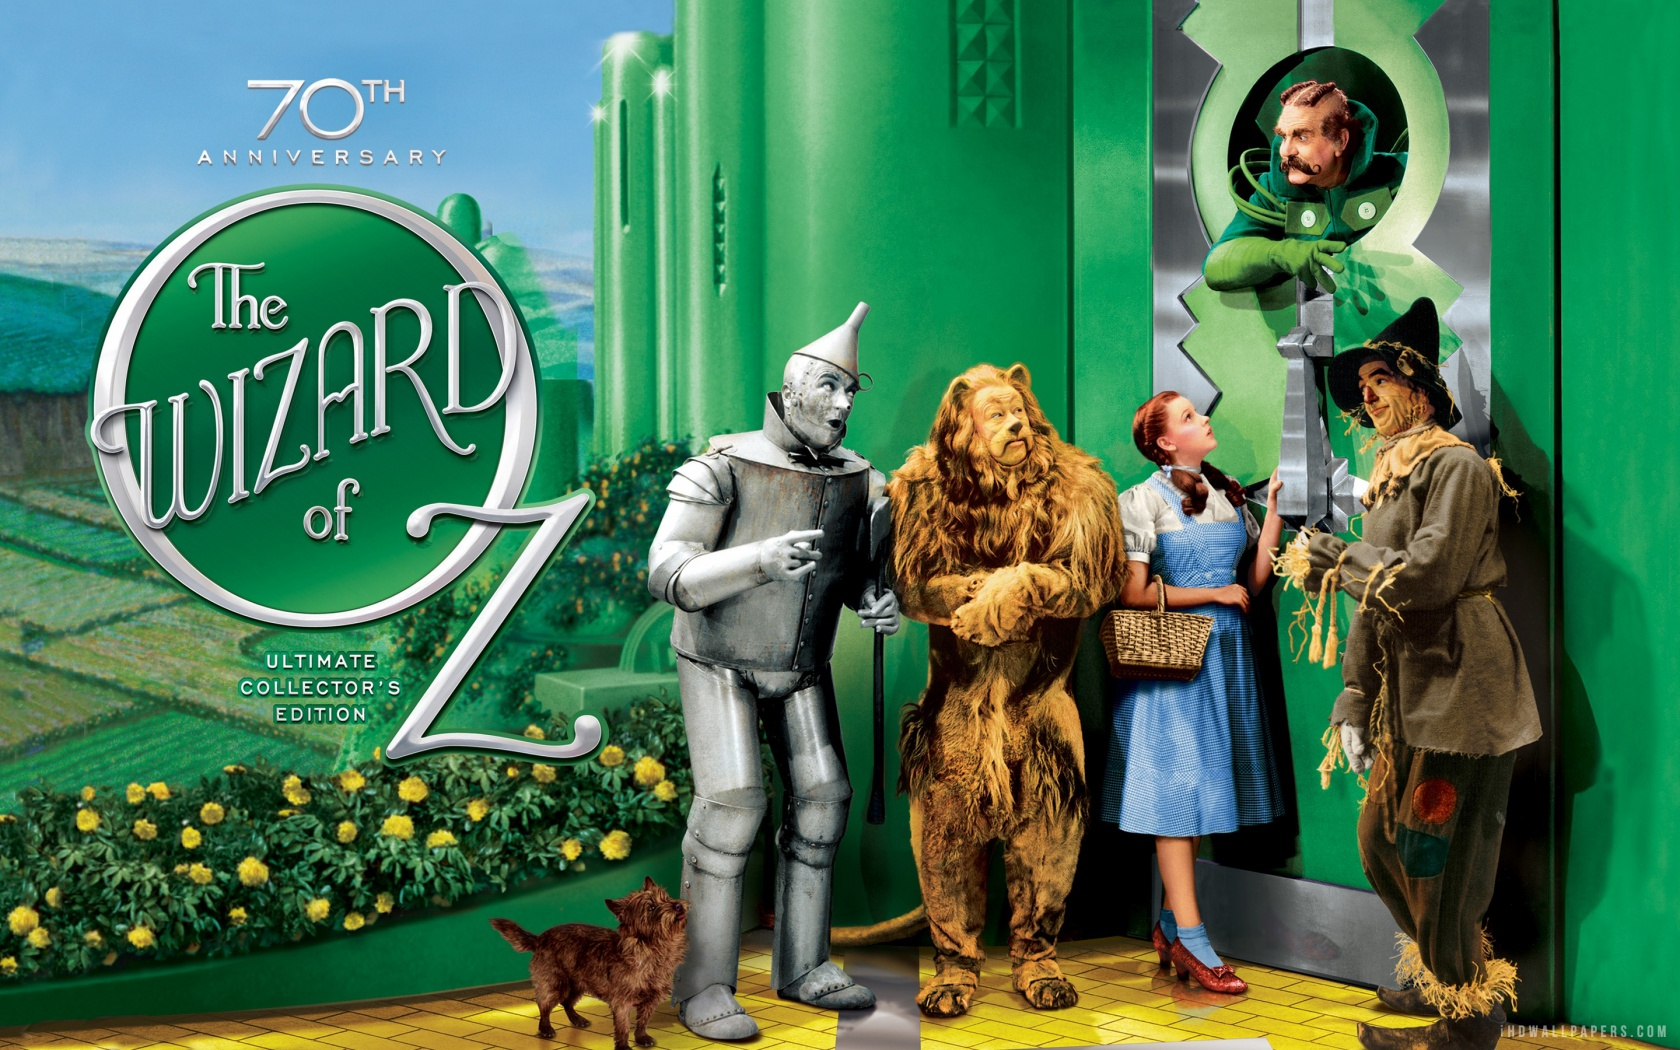 49+] Wizard of Oz Desktop Wallpaper on